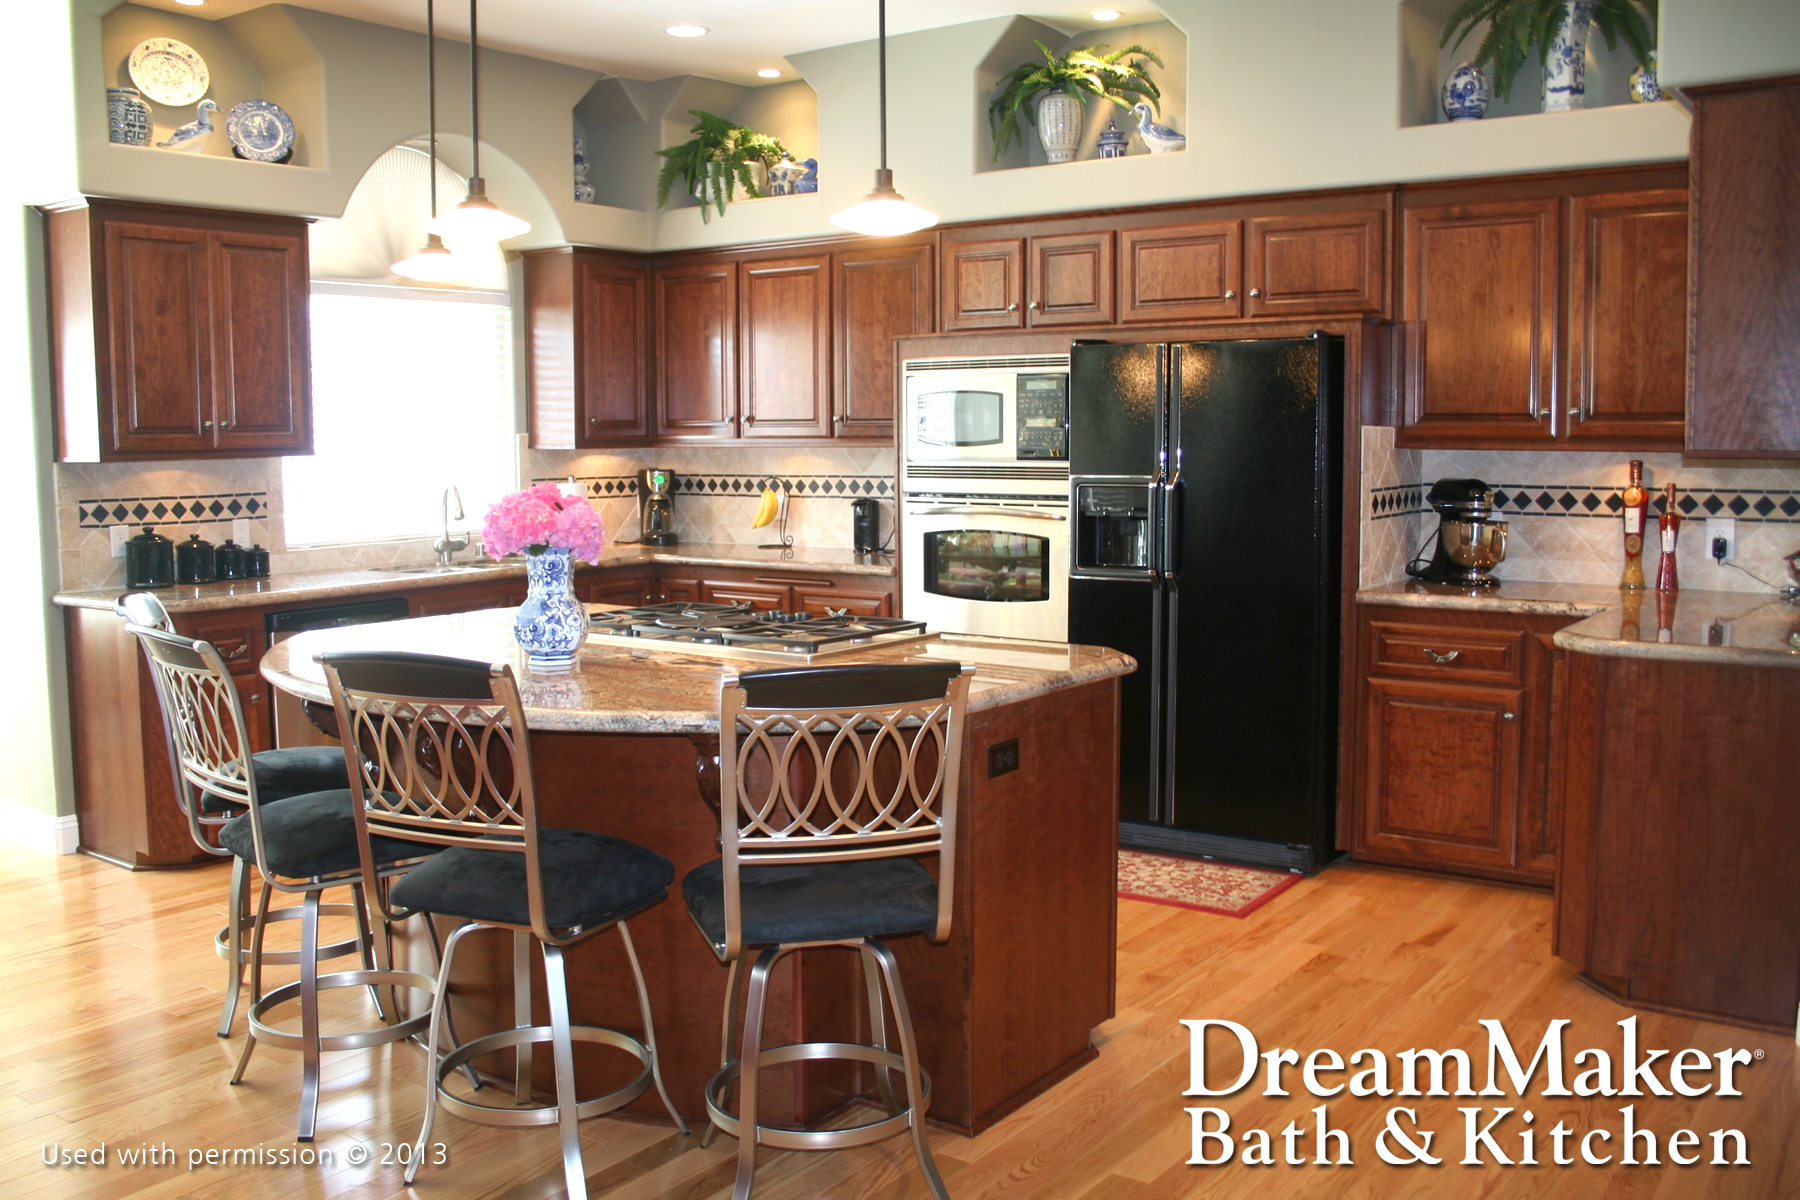 Cabinet Refacing Gallery Schaumburg Dreammaker Bath And Remodeling - Bathroom remodeling schaumburg